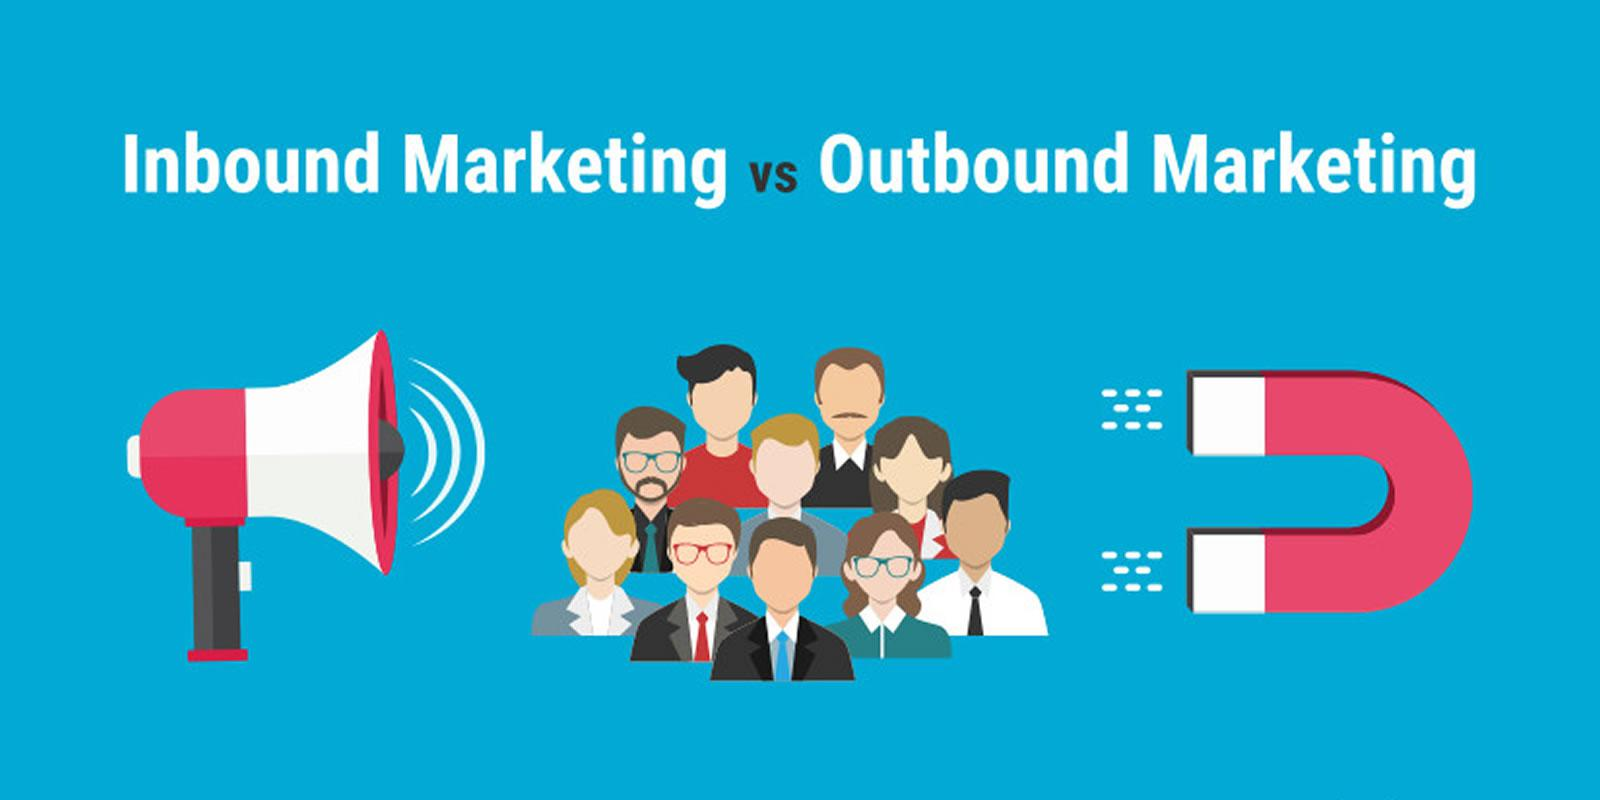 Saiba diferenciar e categorizar Inbound e Outbound Marketing